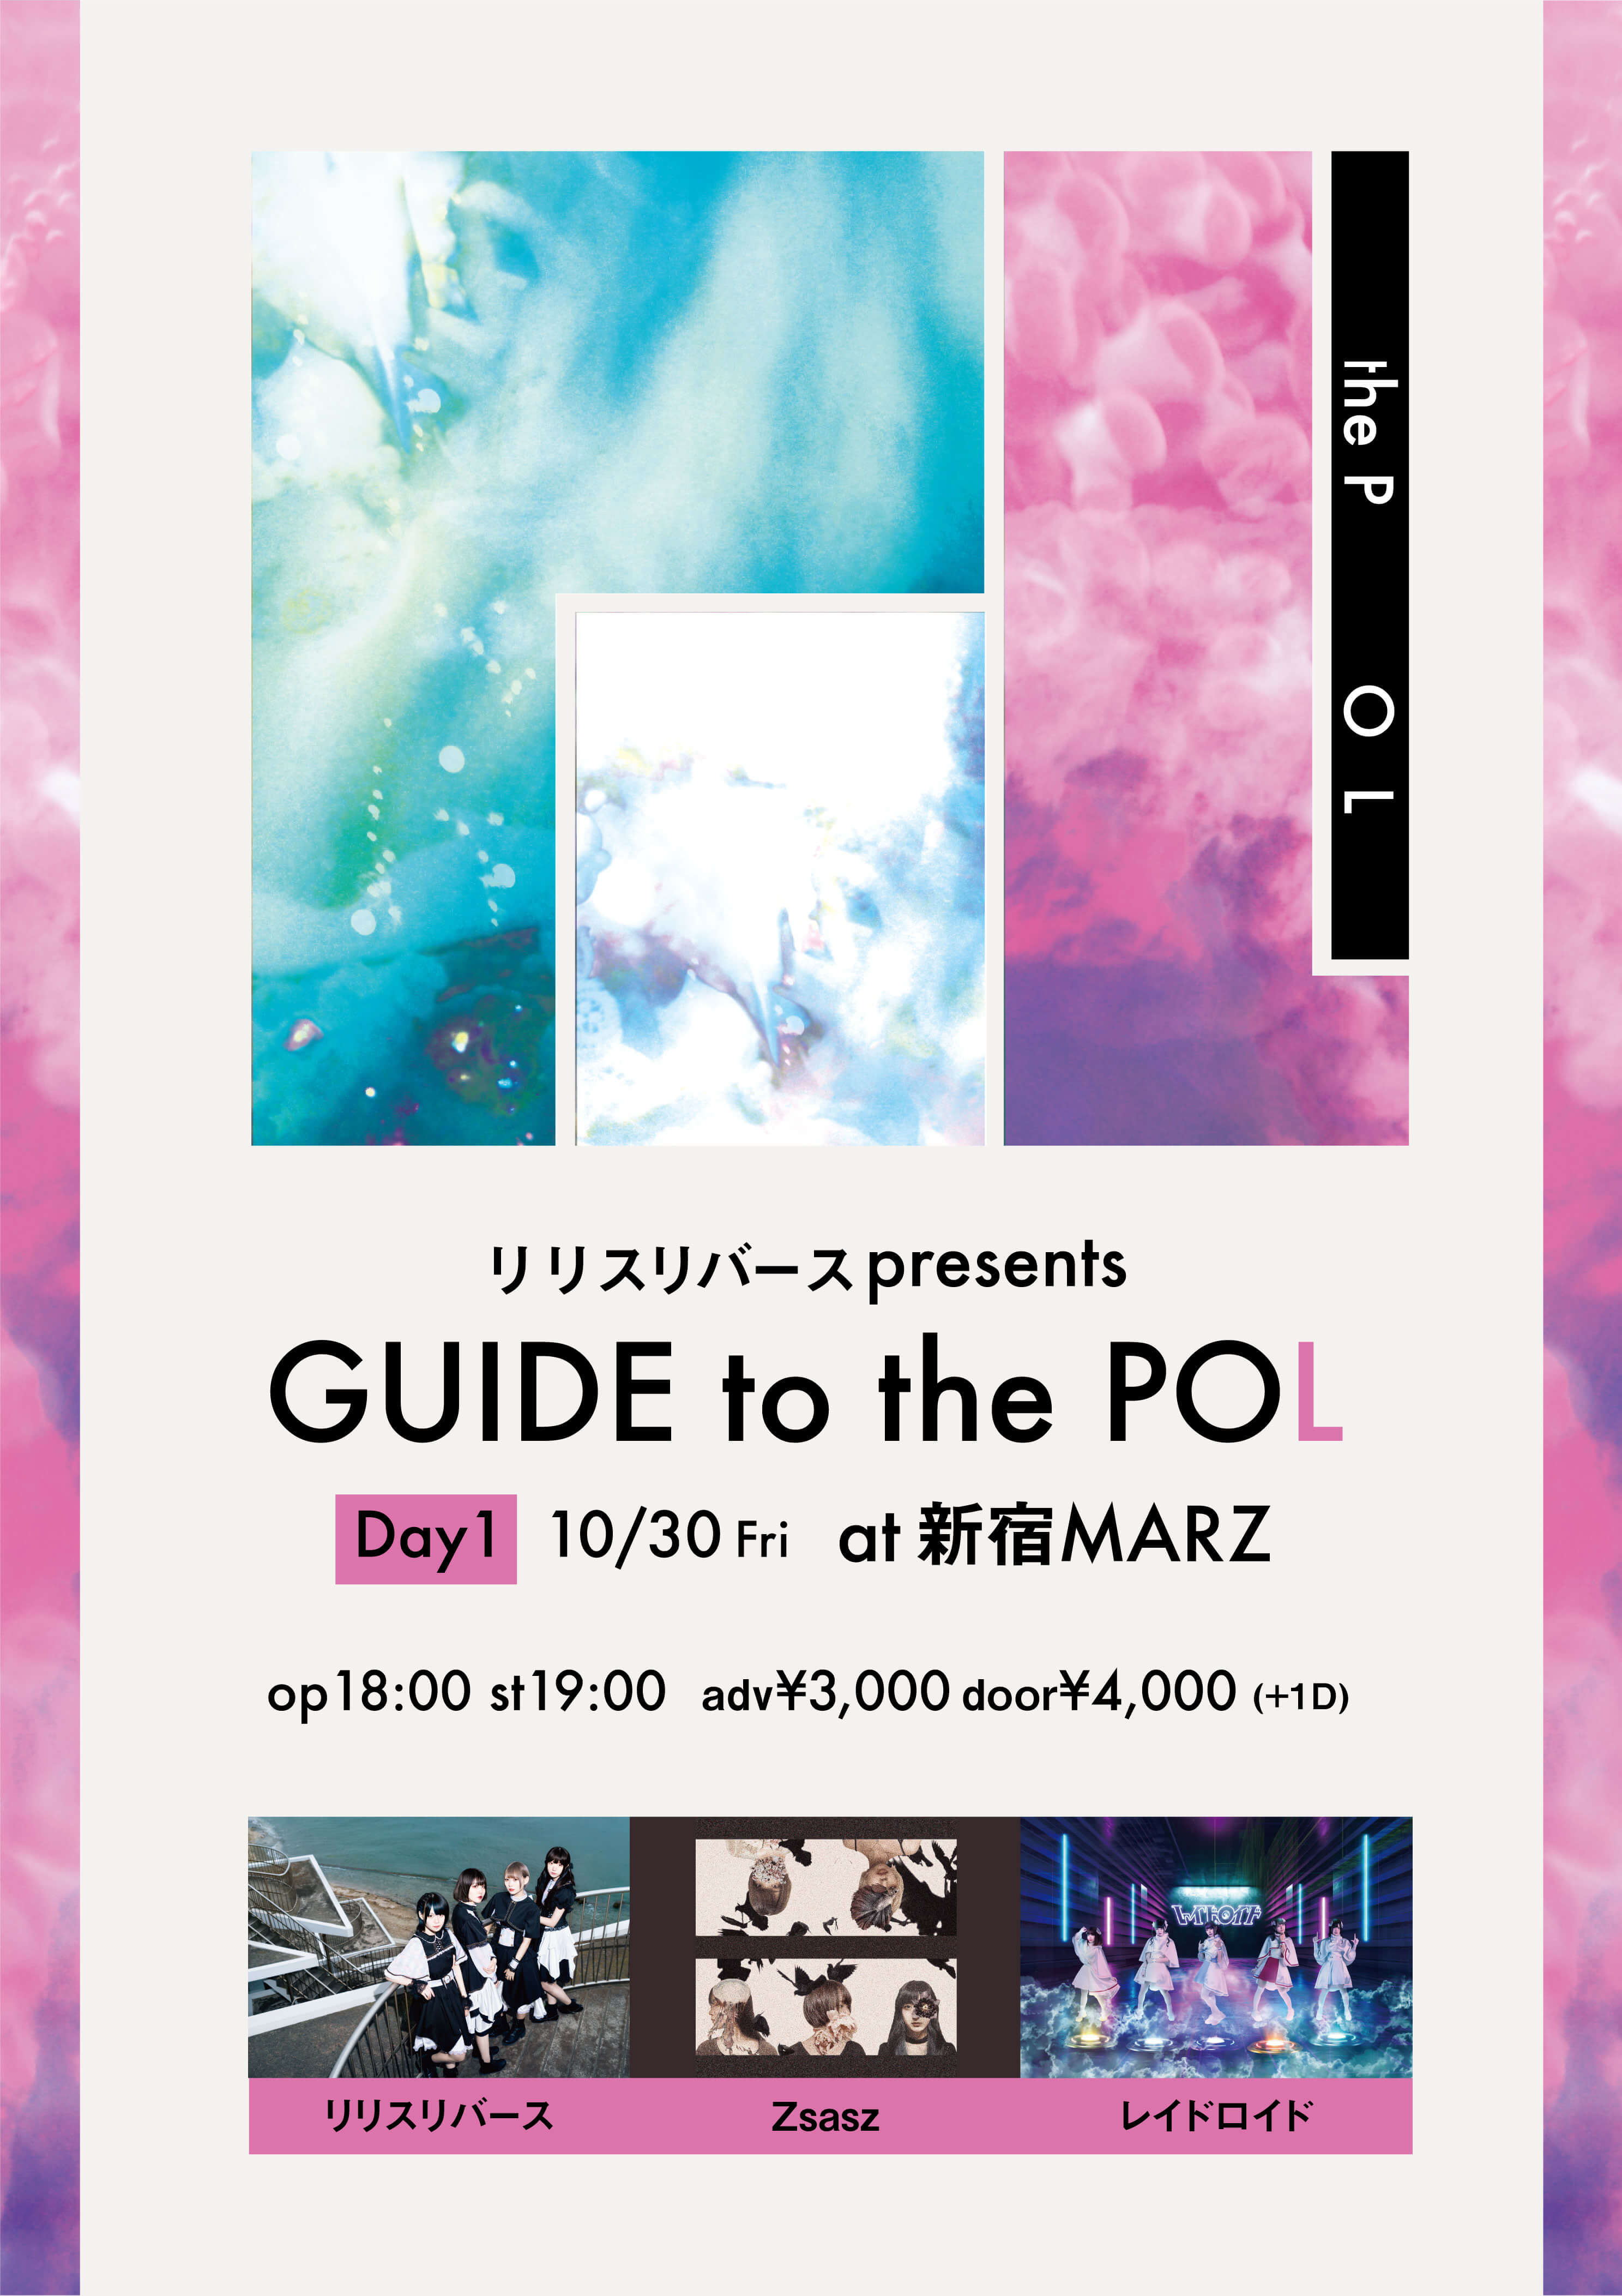 【Day1】リリスリバース presents 「GUIDE to the POL」